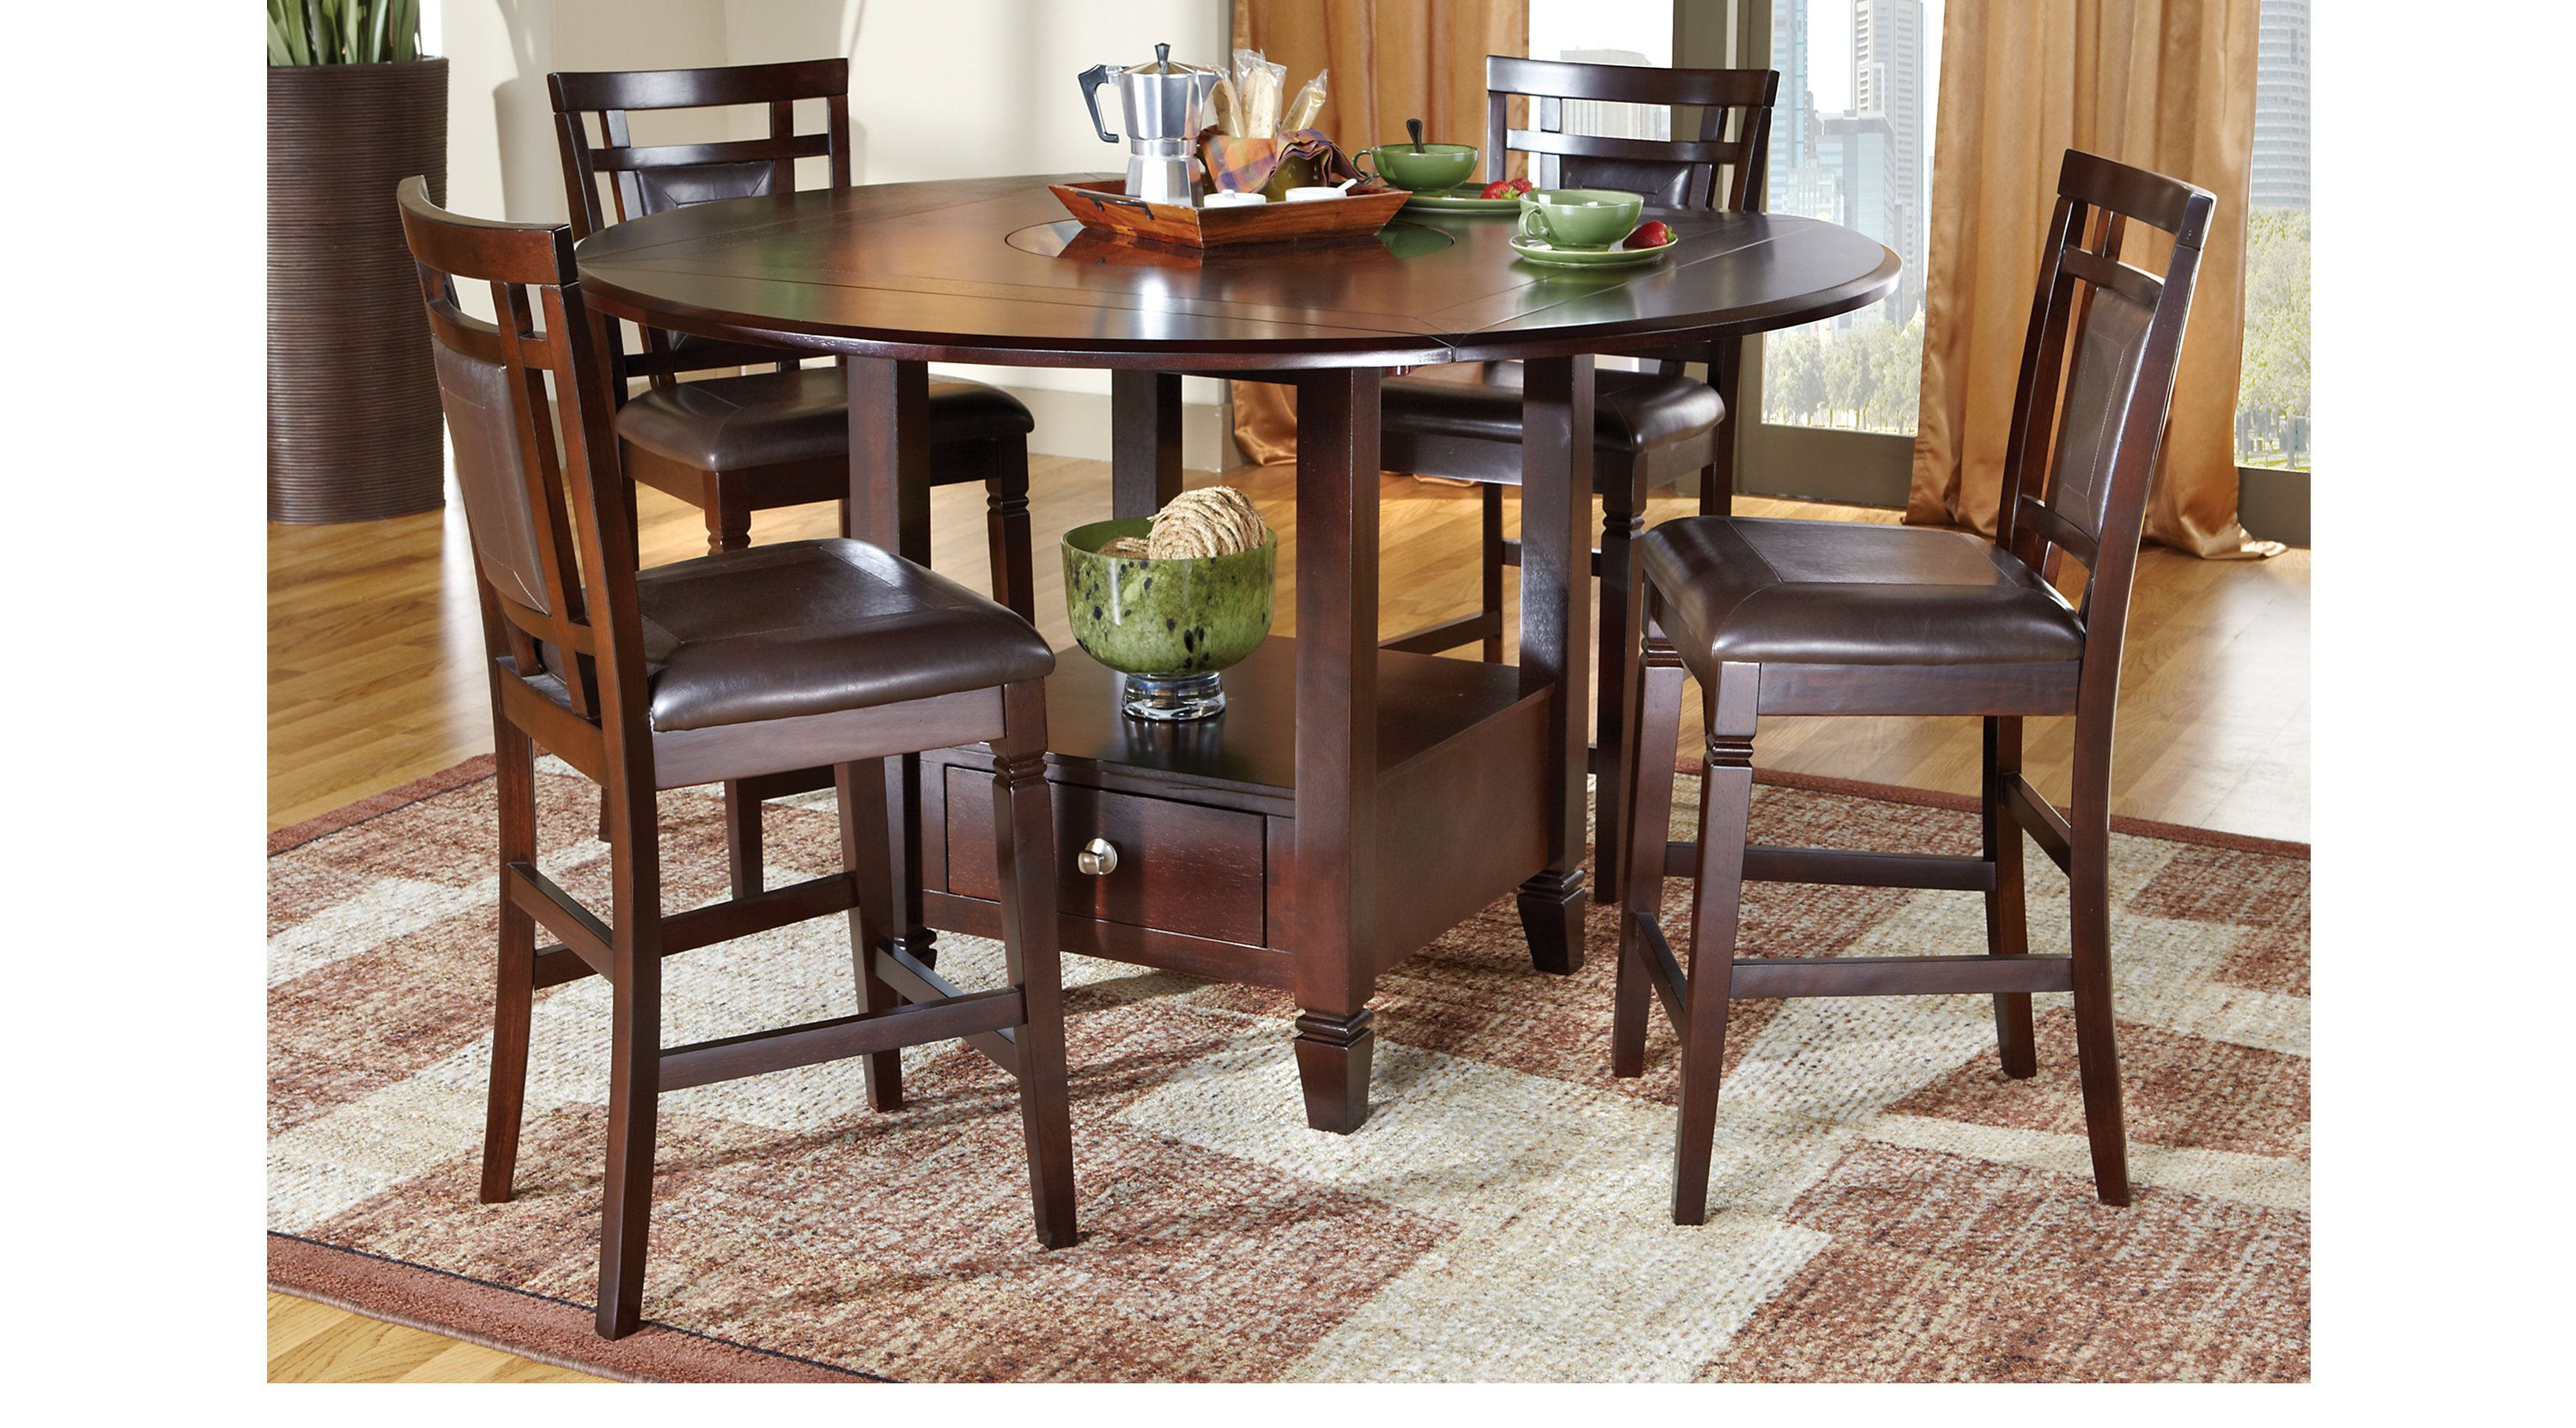 Landon Chocolate 5 Pc Counter Height Dining Set Dining Room Sets Dark Wood In 2020 Rooms To Go Furniture Dining Room Sets Round Dining Room